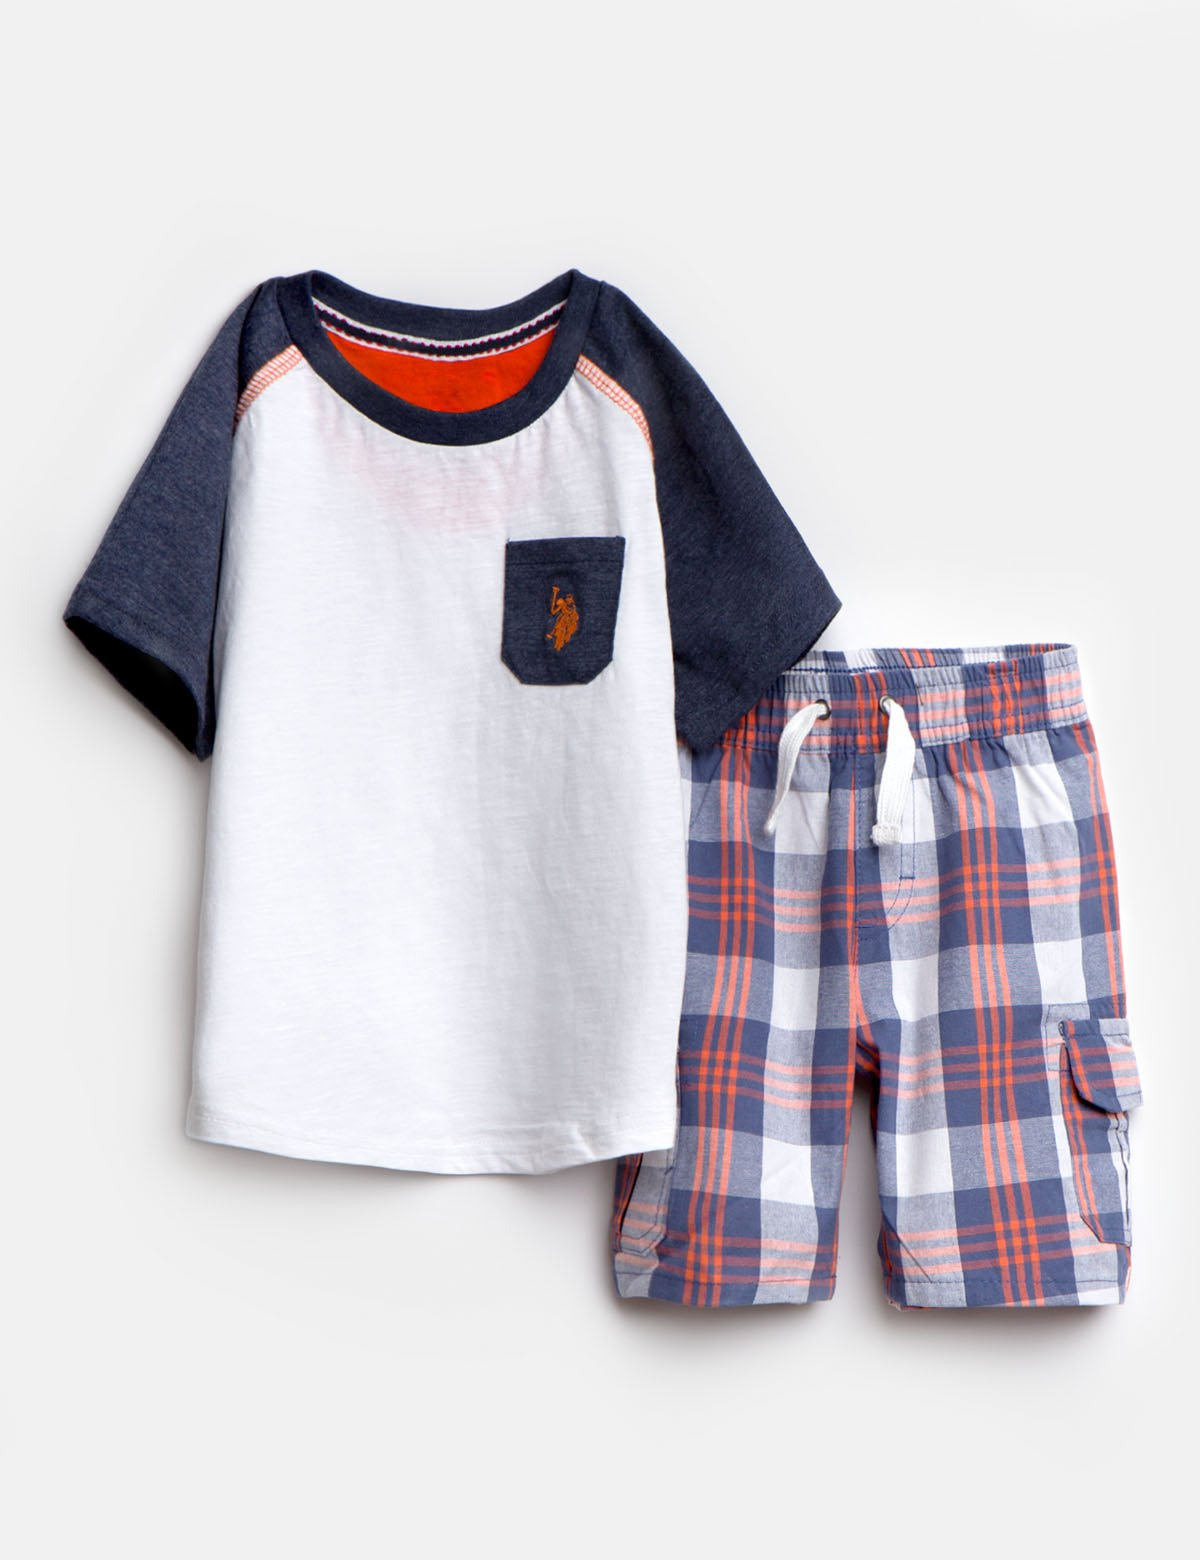 TODDLER BOYS 2 PIECE SET: TEE & SHORTS